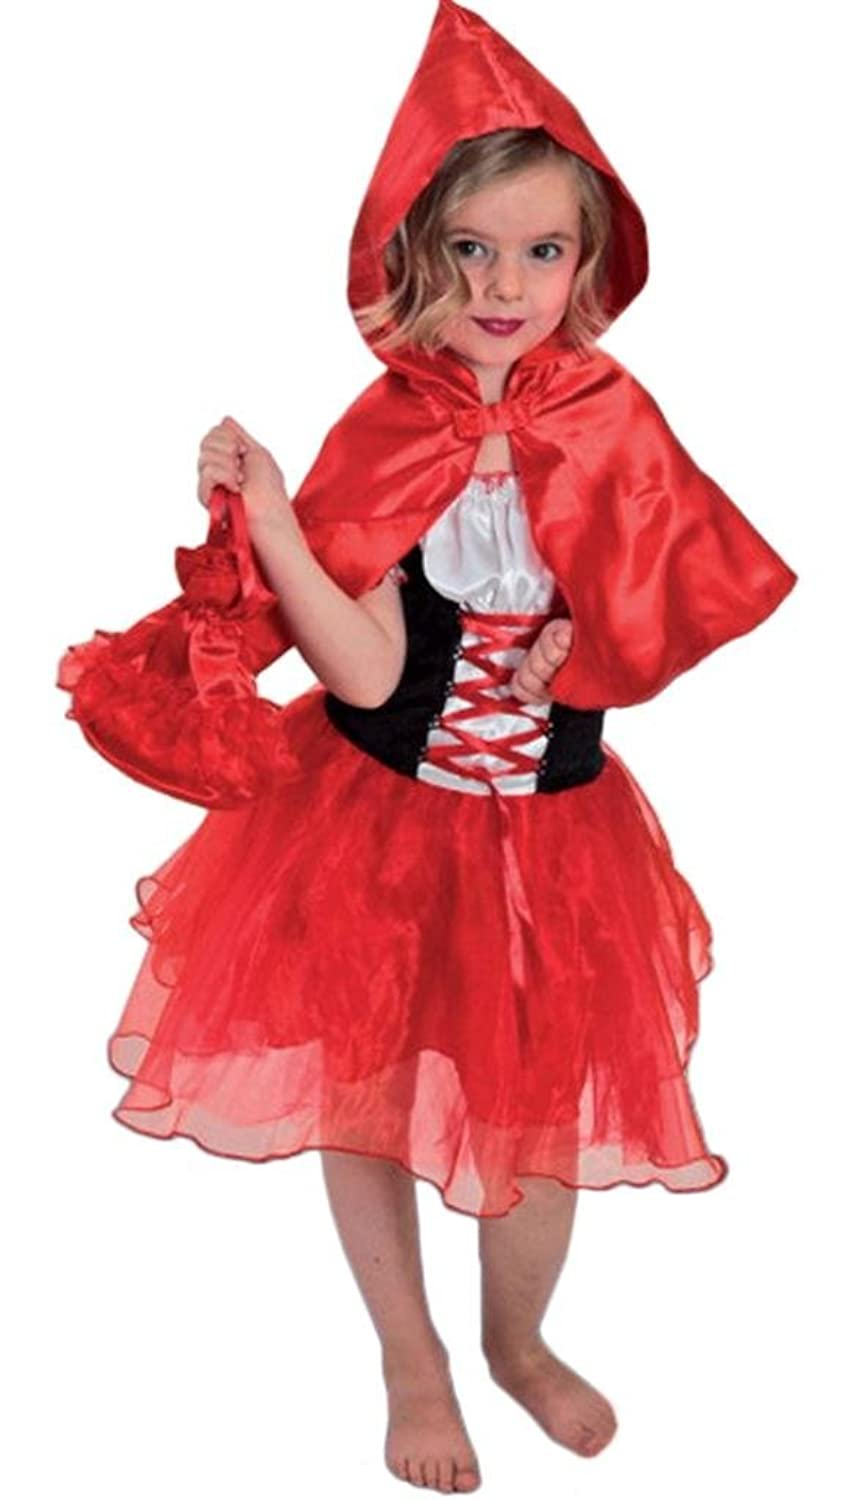 Eyekepper Children Little Red Riding Hood princess dresses